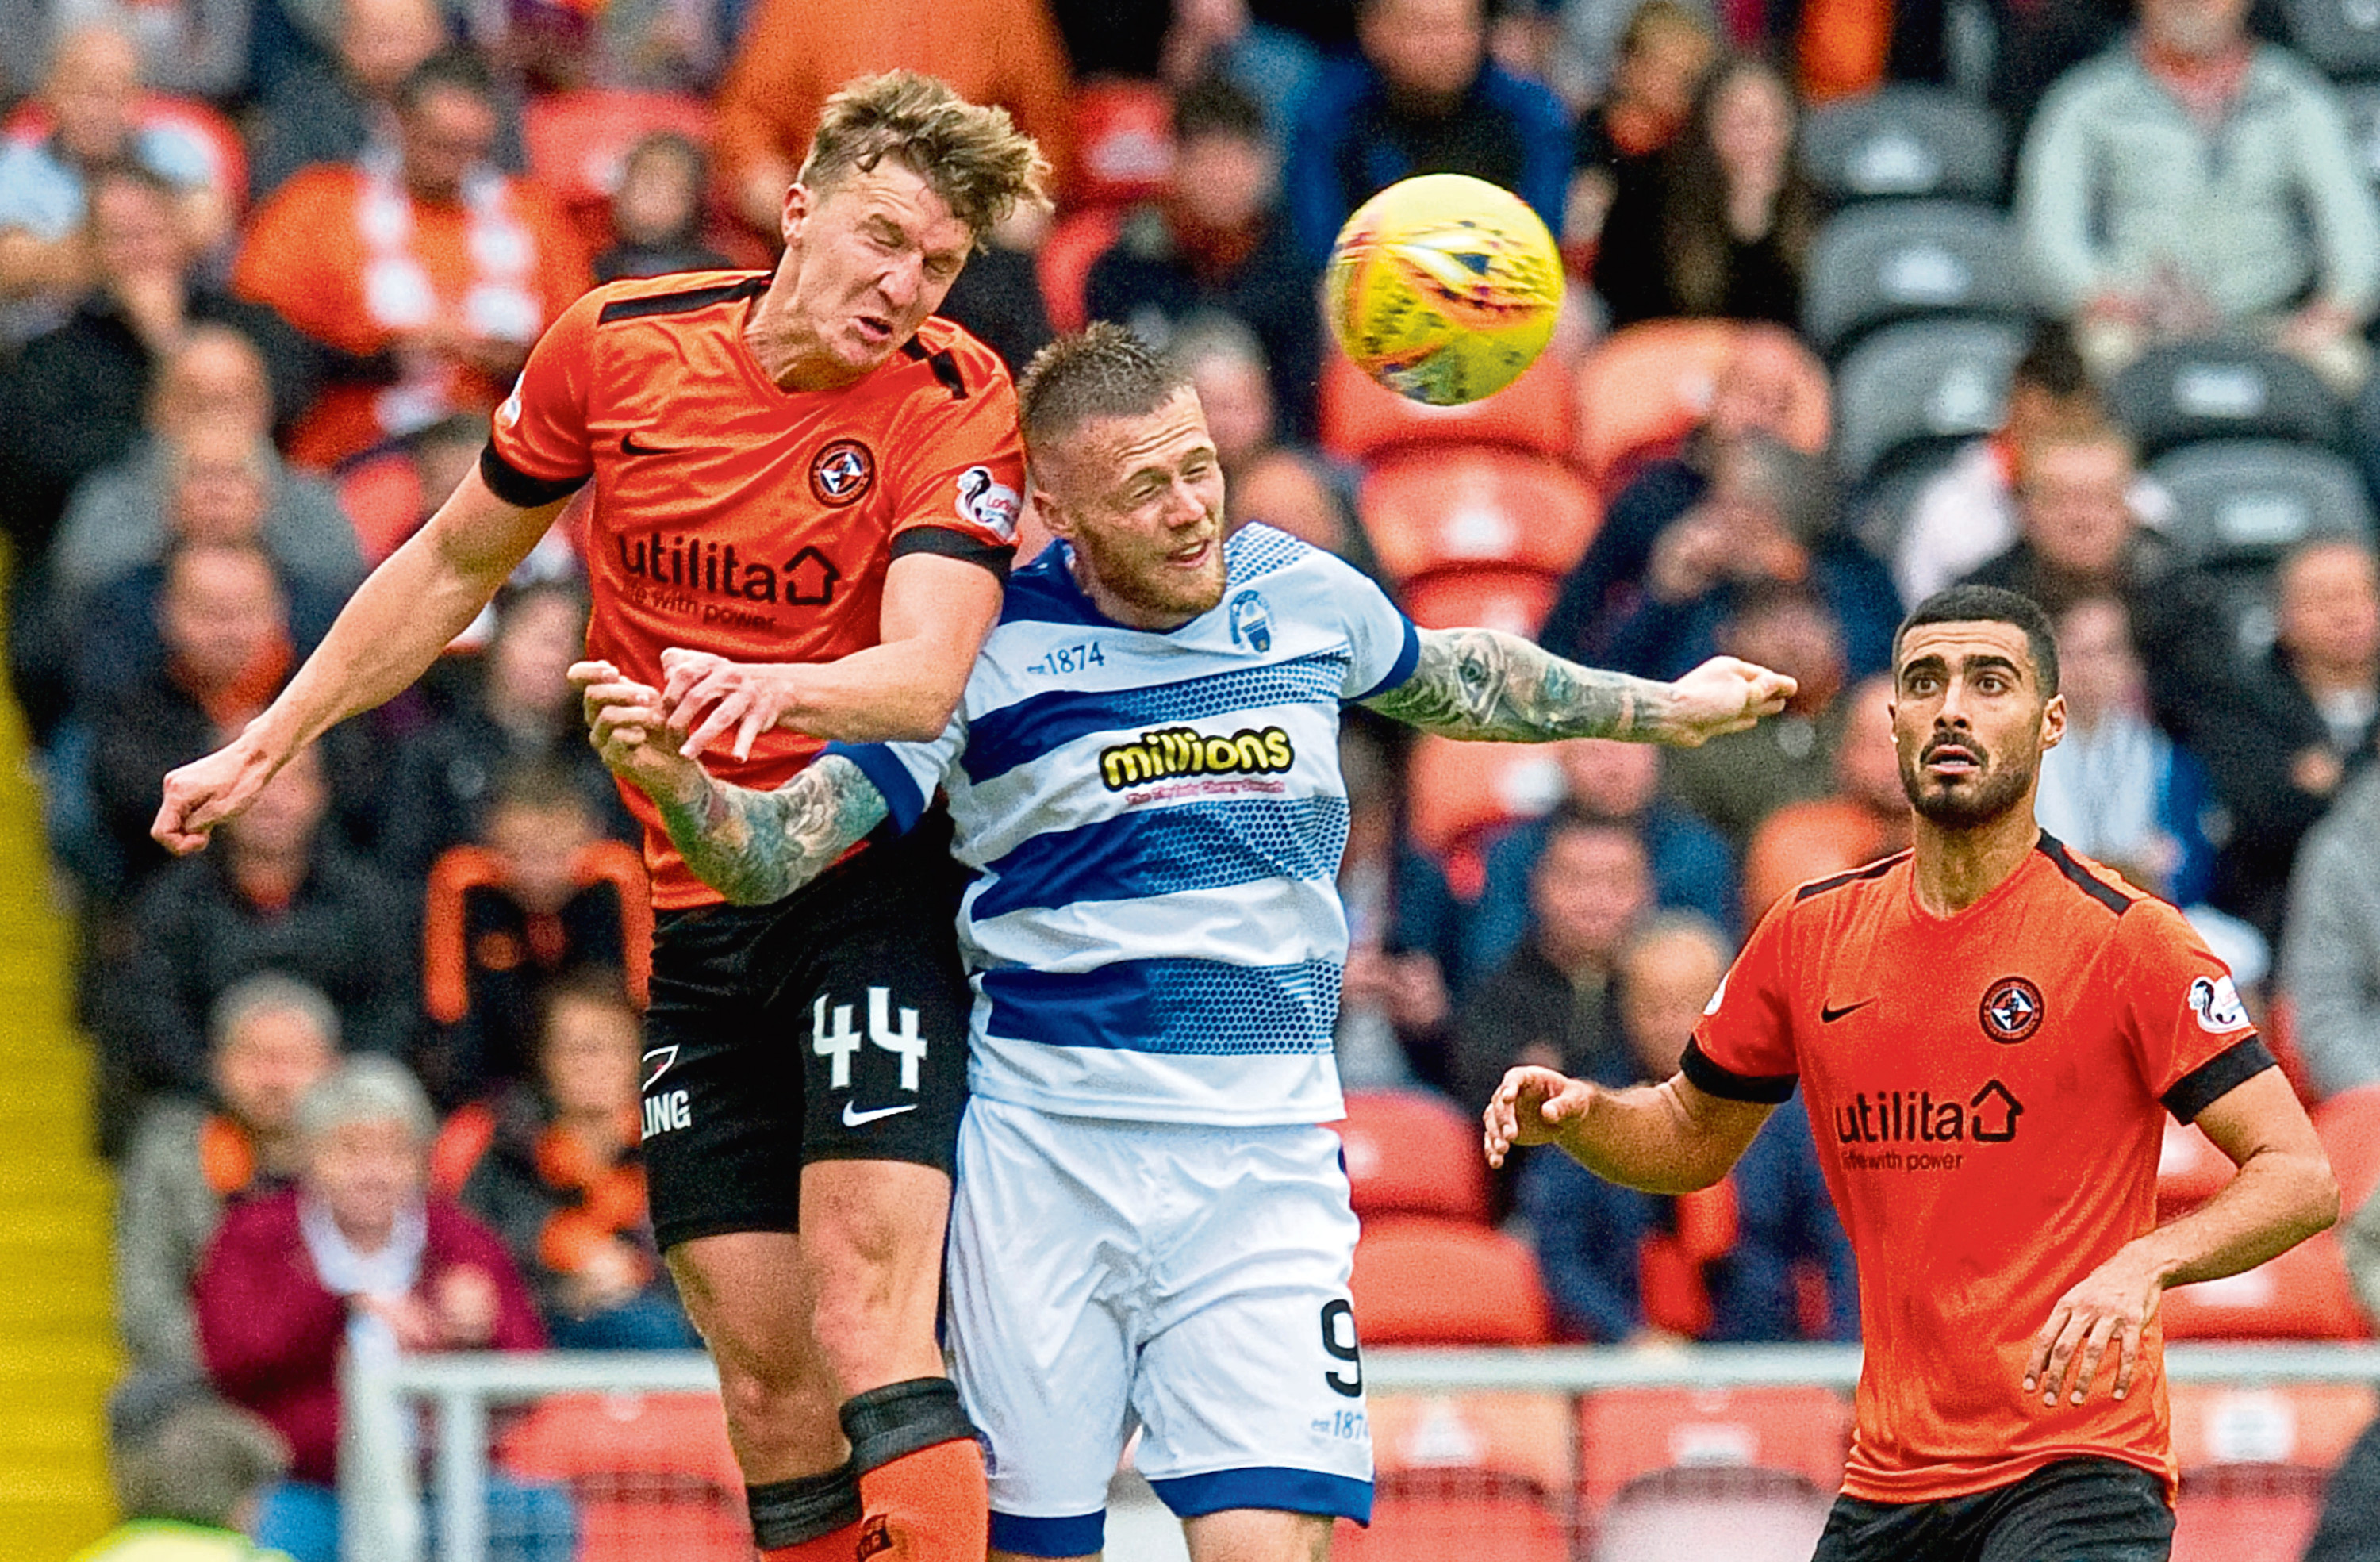 Dundee United defender Paul Watson is looking for the Terrors to go on a winning run and block out all around them.